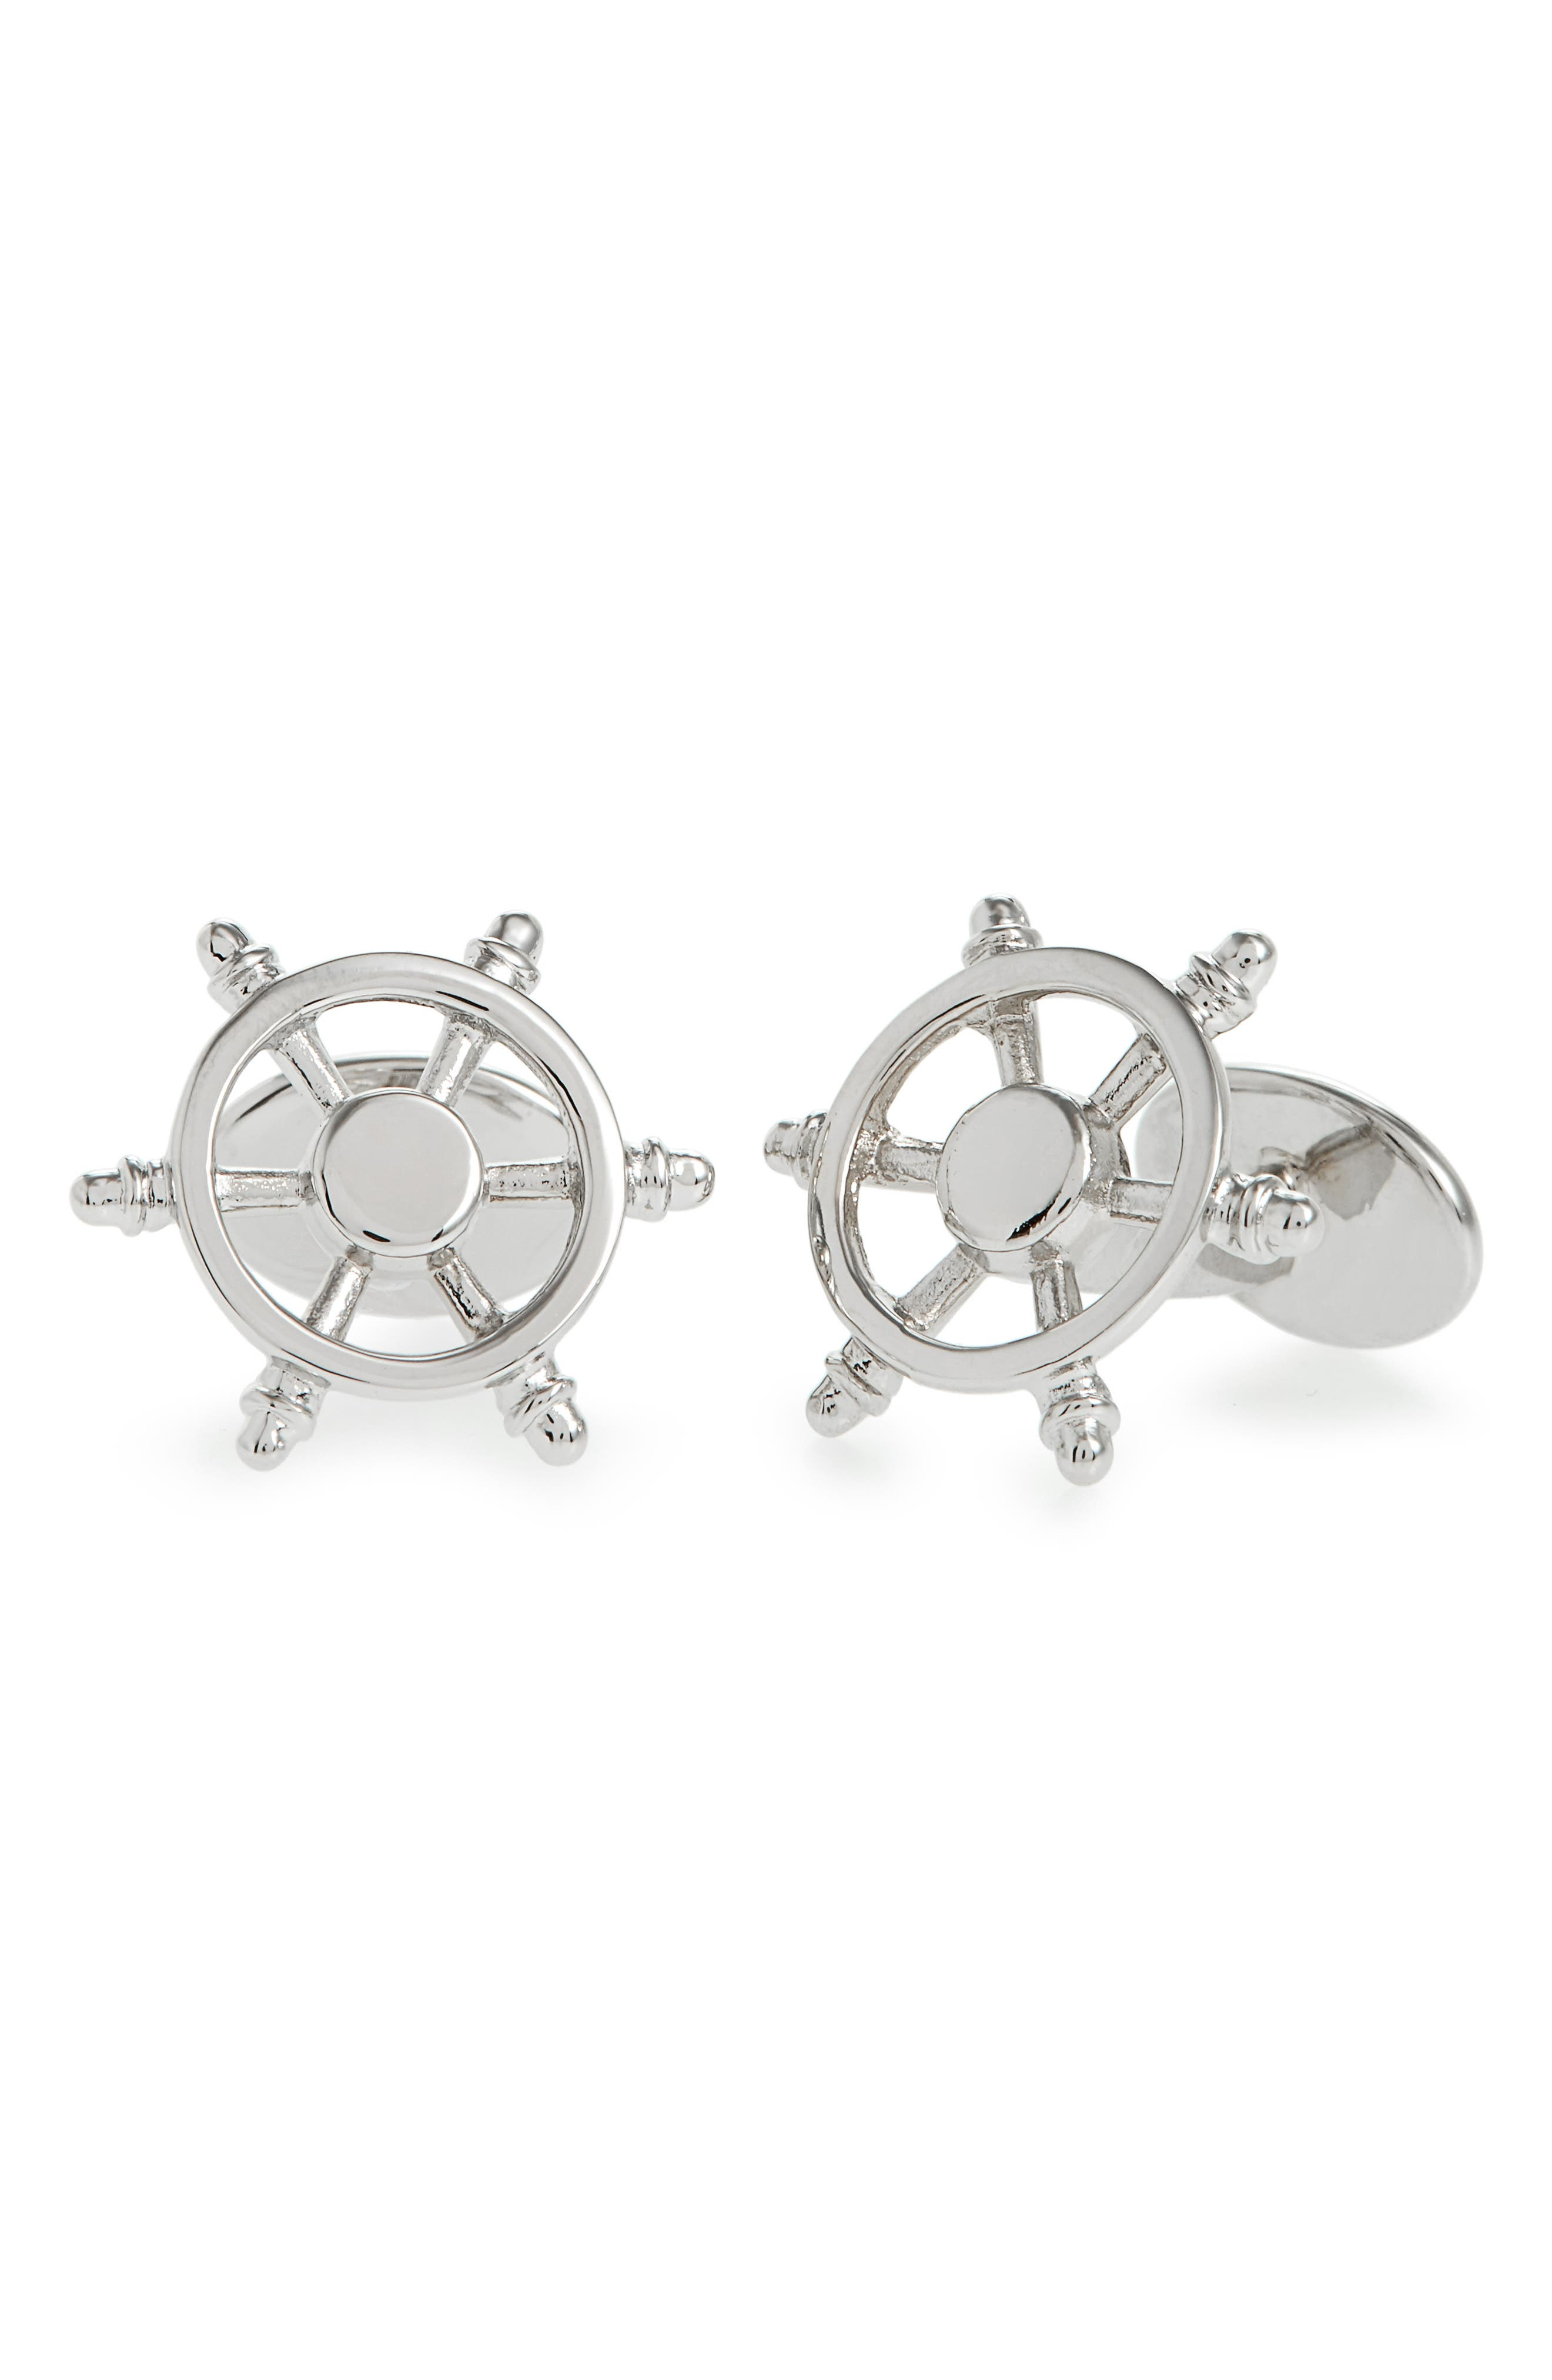 Ship's Wheel Cuff Links,                             Main thumbnail 1, color,                             SILVER